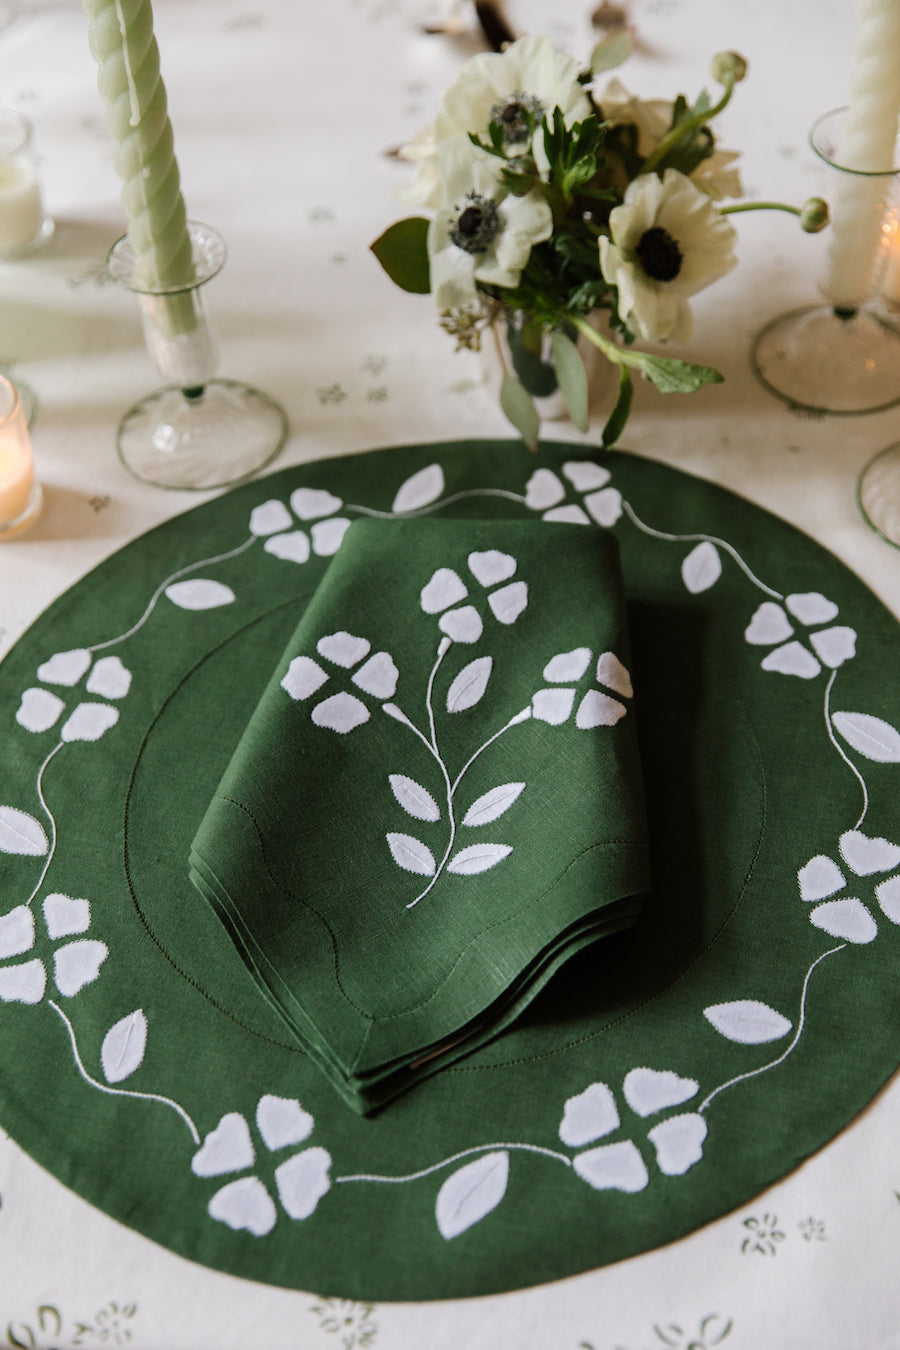 Matisse Dinner Napkins, Green & White, Set of 2 - 4 SETS LEFT